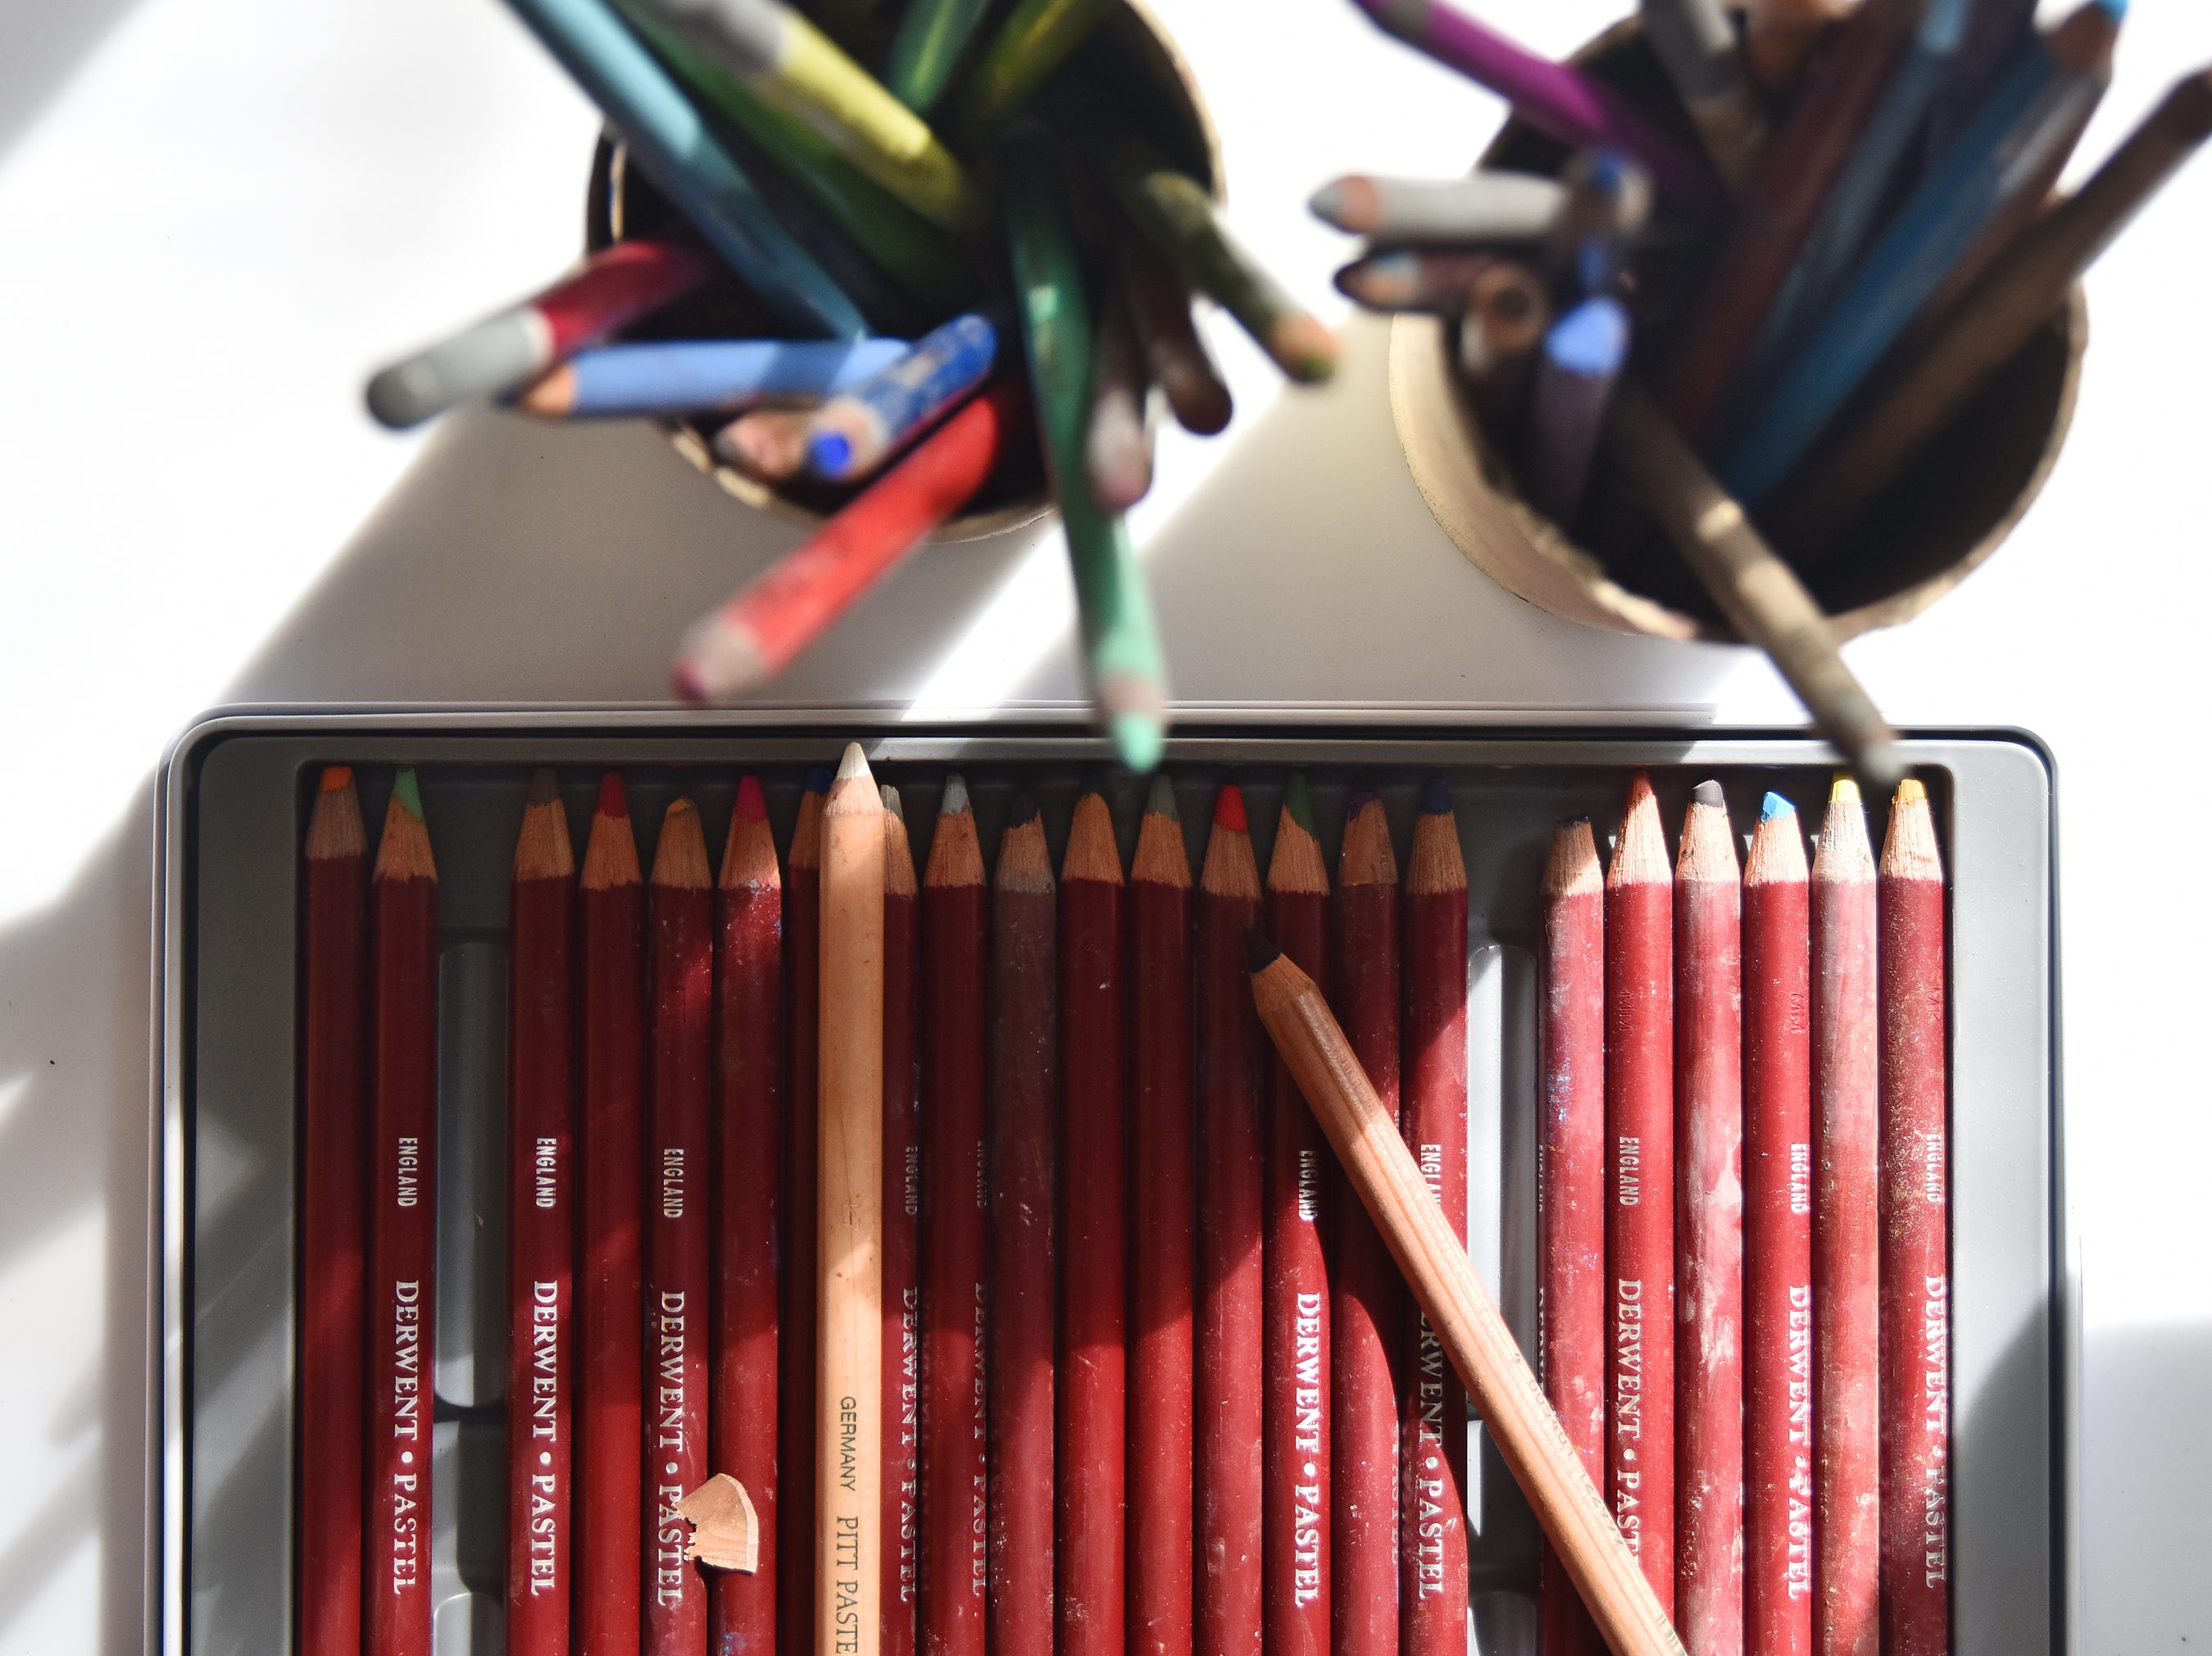 Colored pencils used by artist Olivia White.